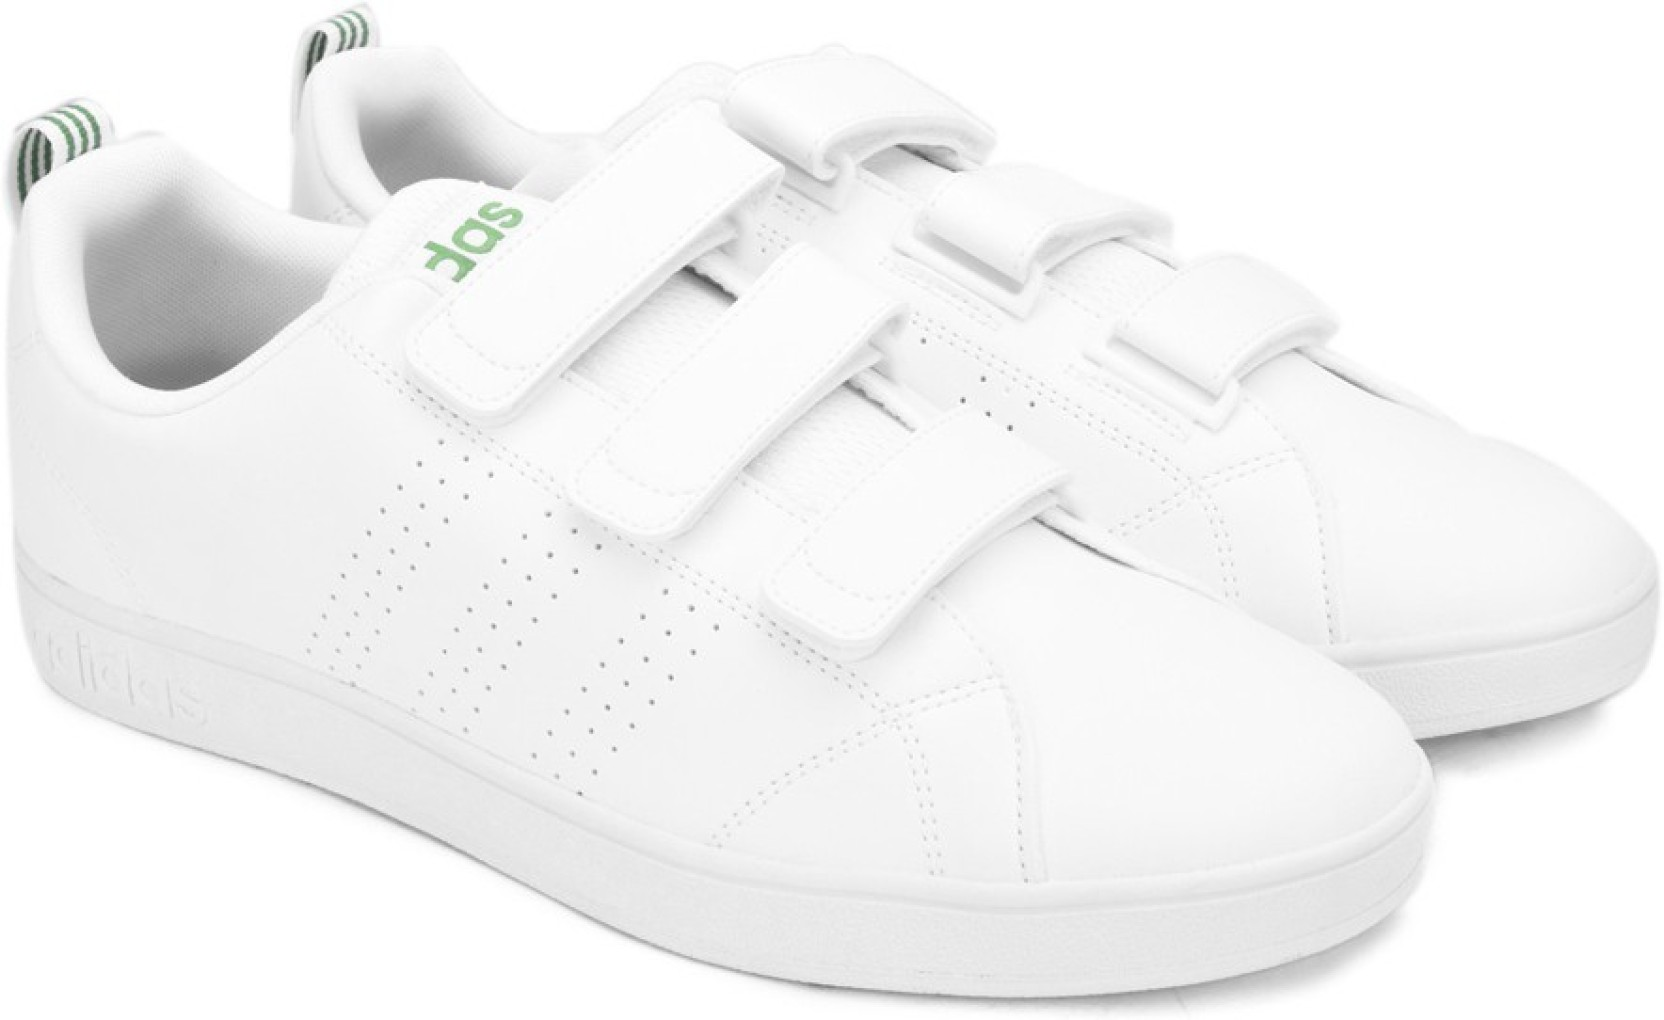 separation shoes bc785 1df4c ADIDAS NEO VS ADVANTAGE CLEAN CMF Sneakers For Men (White)